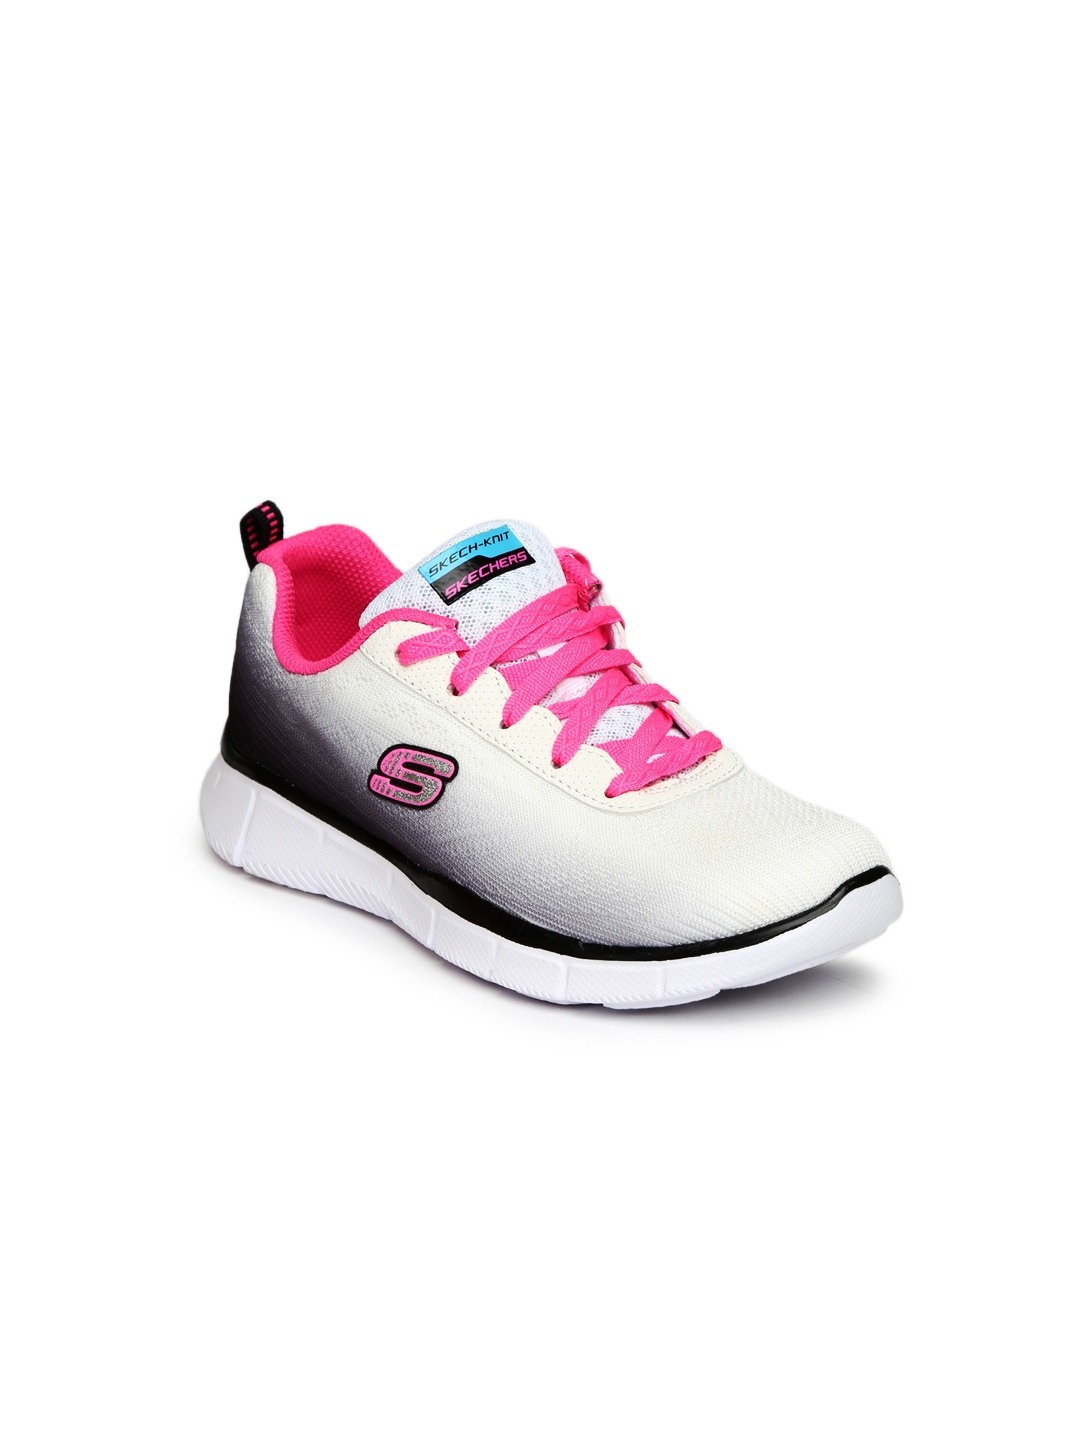 Myntra shoes online shopping